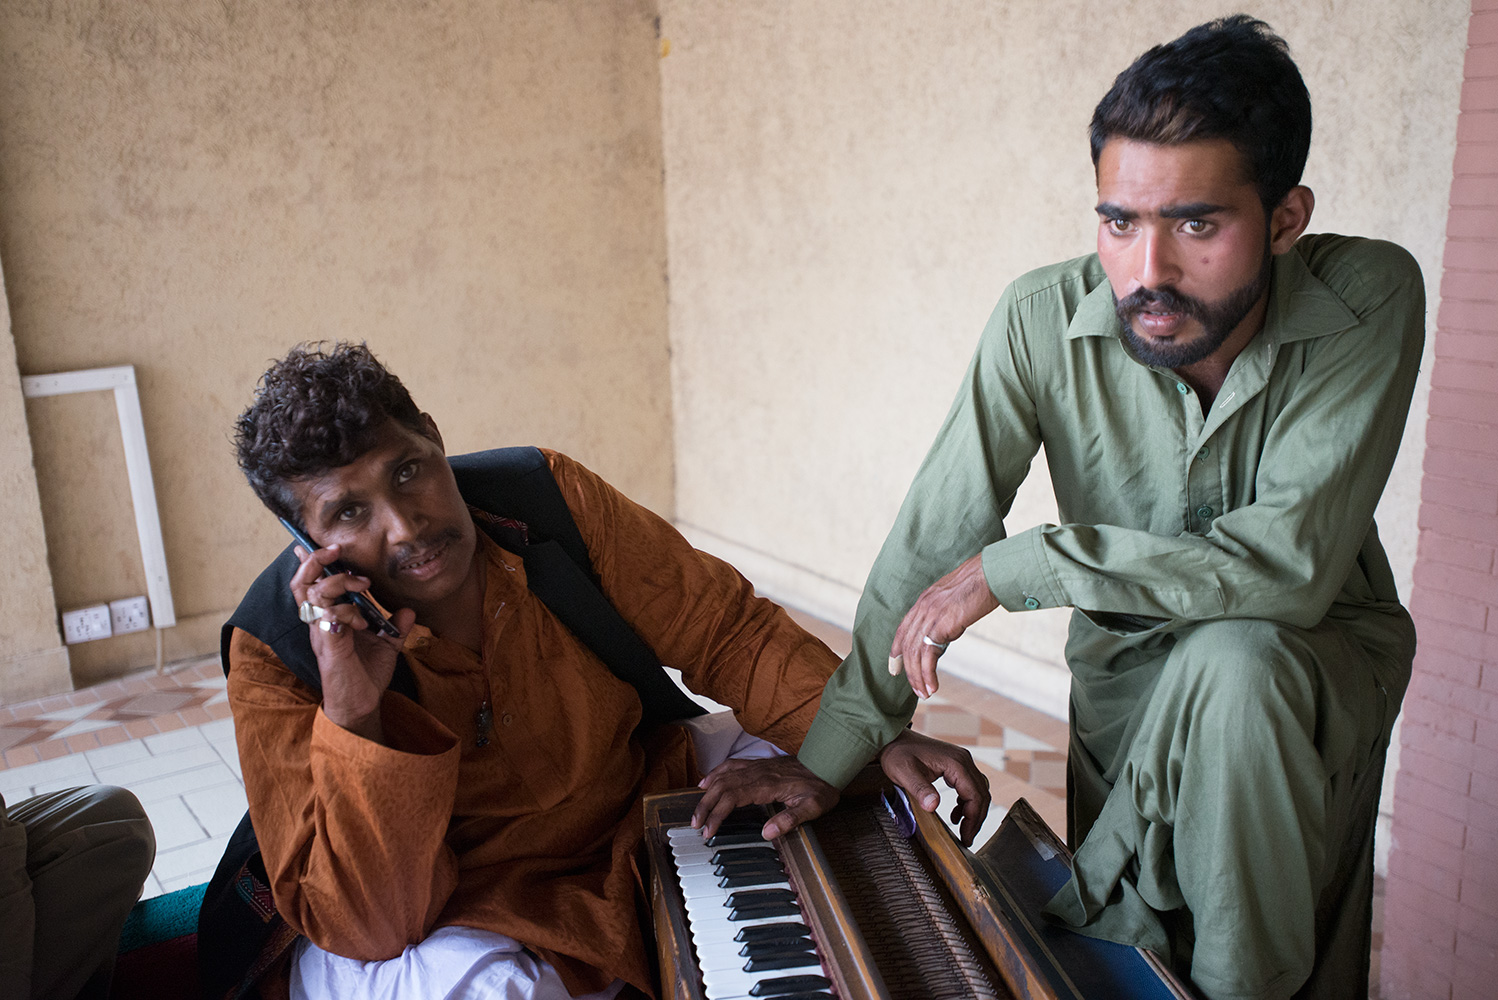 Qawalli musicians busking outside